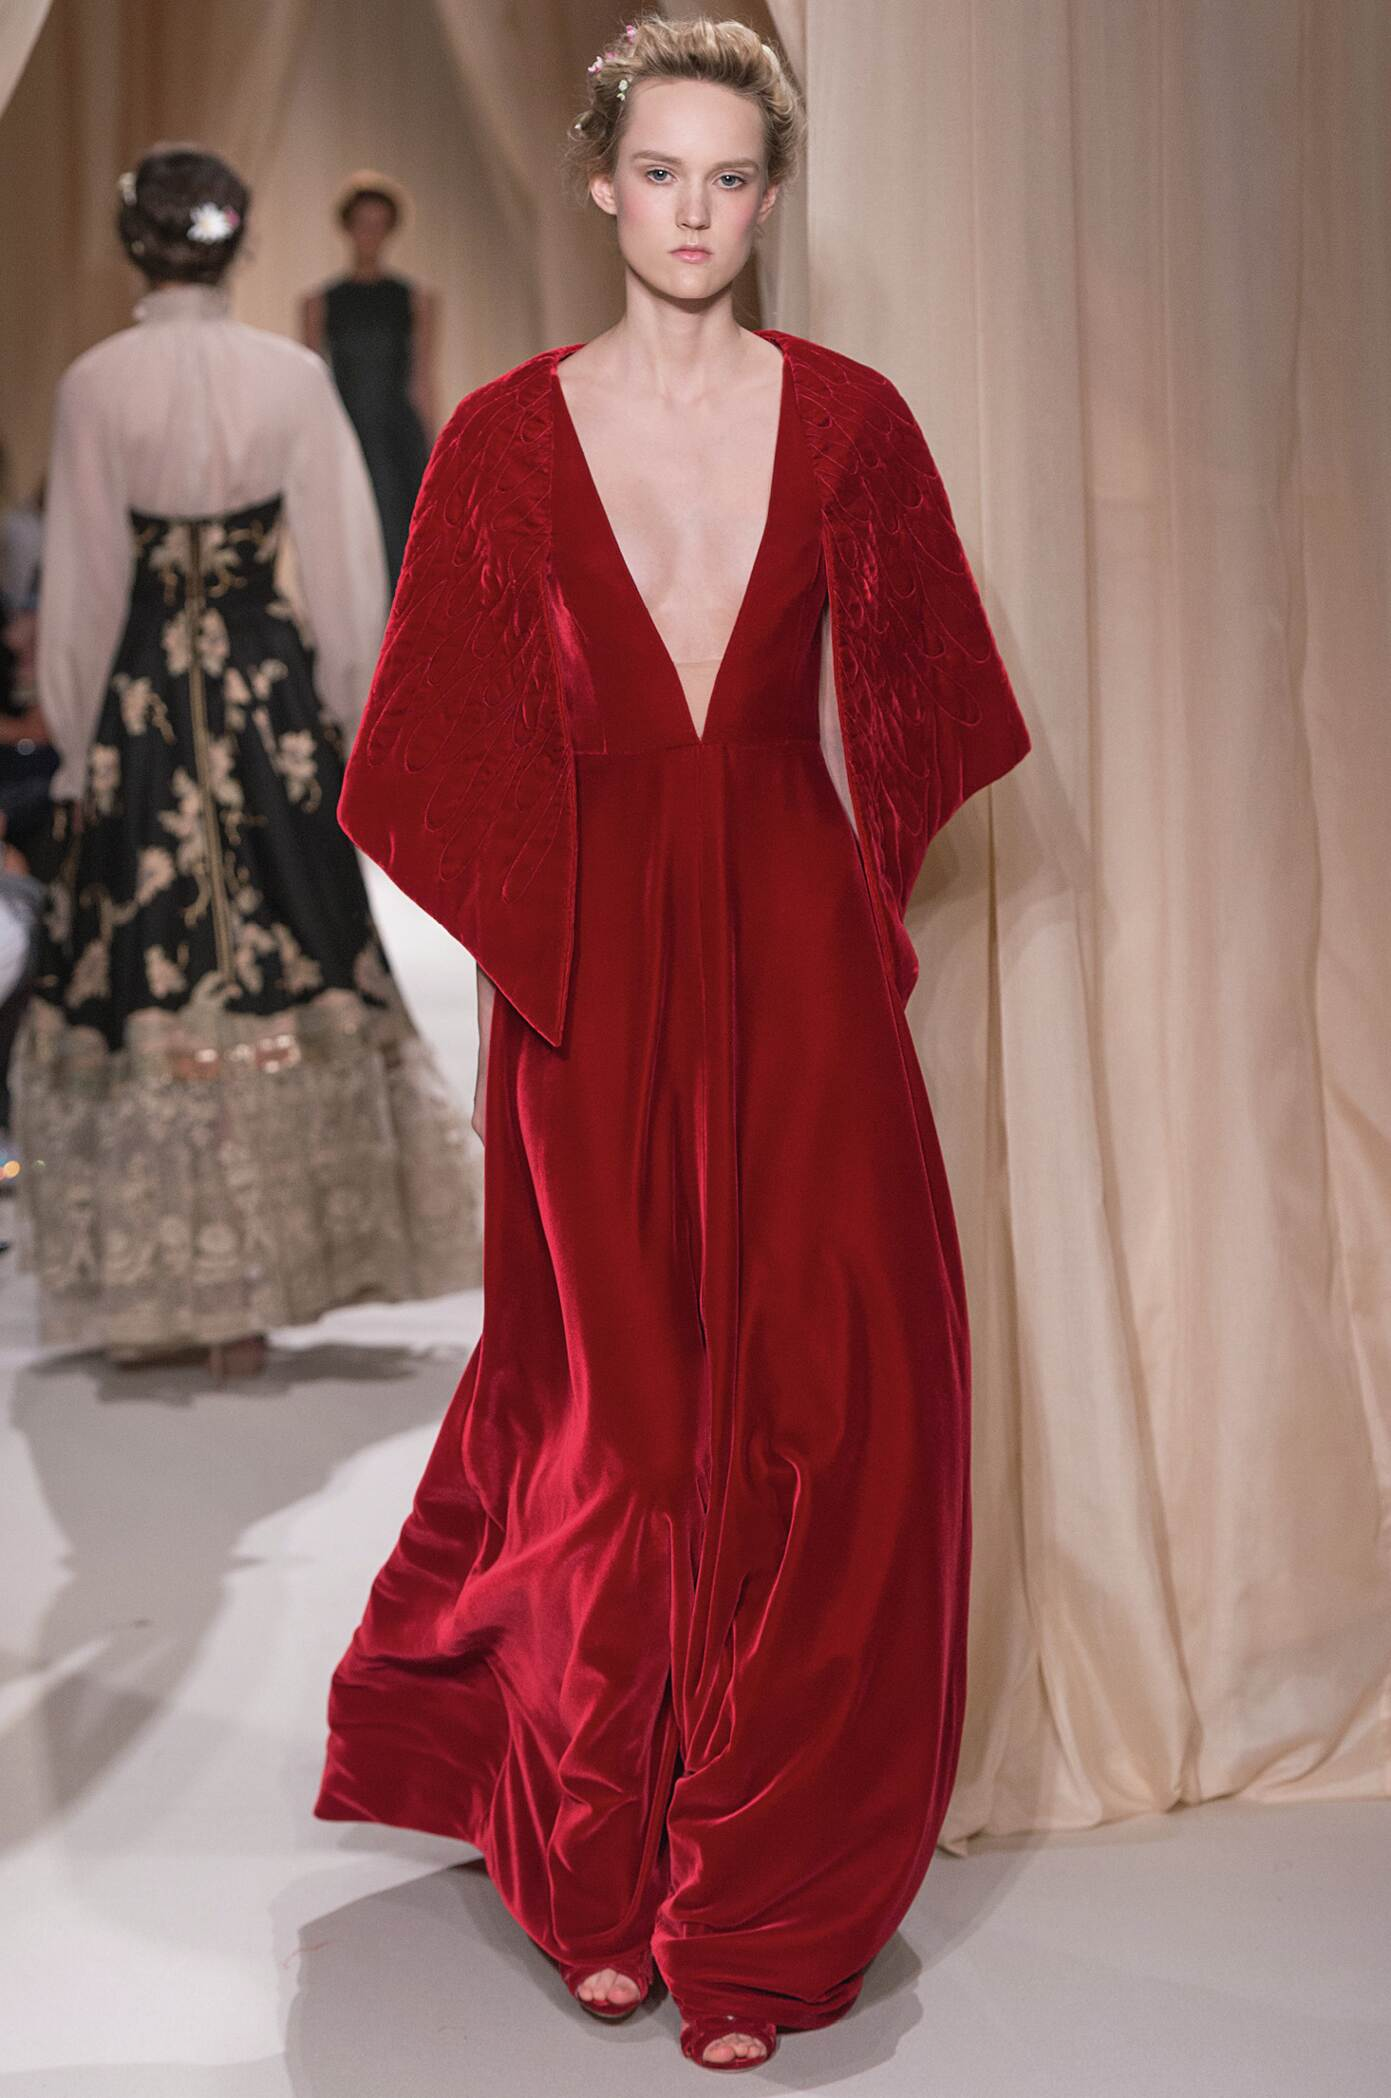 VALENTINO HAUTE COUTURE SPRING SUMMER 2015 WOMEN'S